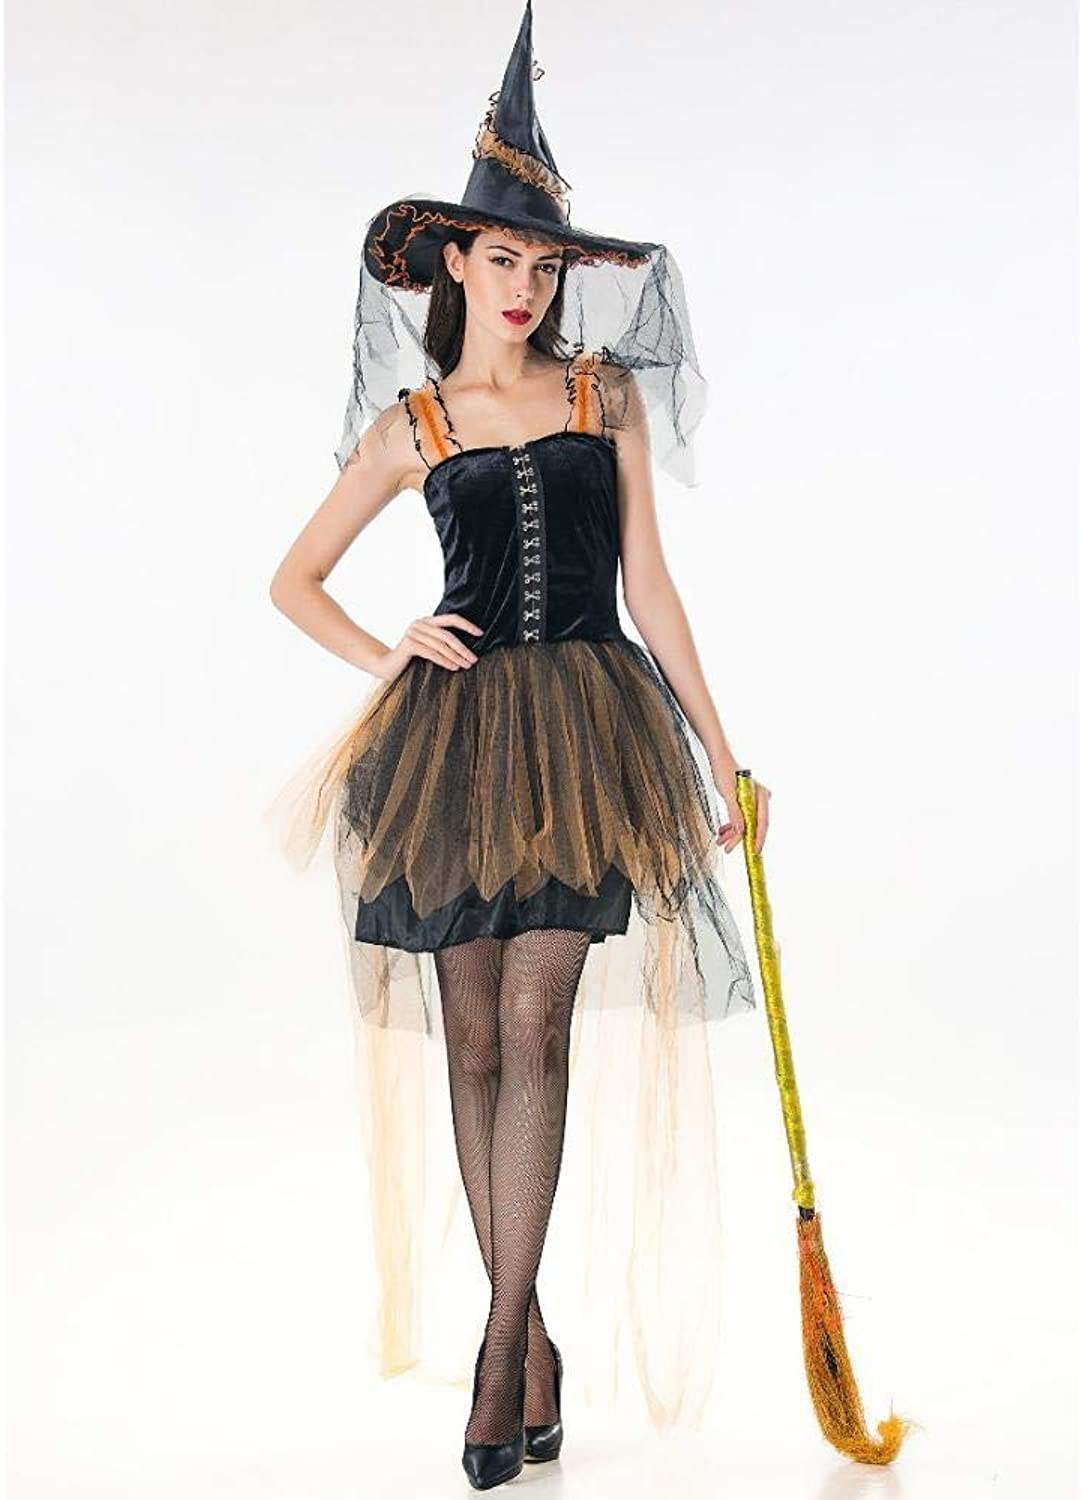 Yunfeng Witch Costume Witch Costume Halloween Costume Female Vampire Witch Skirt Lady Role Play Masquerade Costume